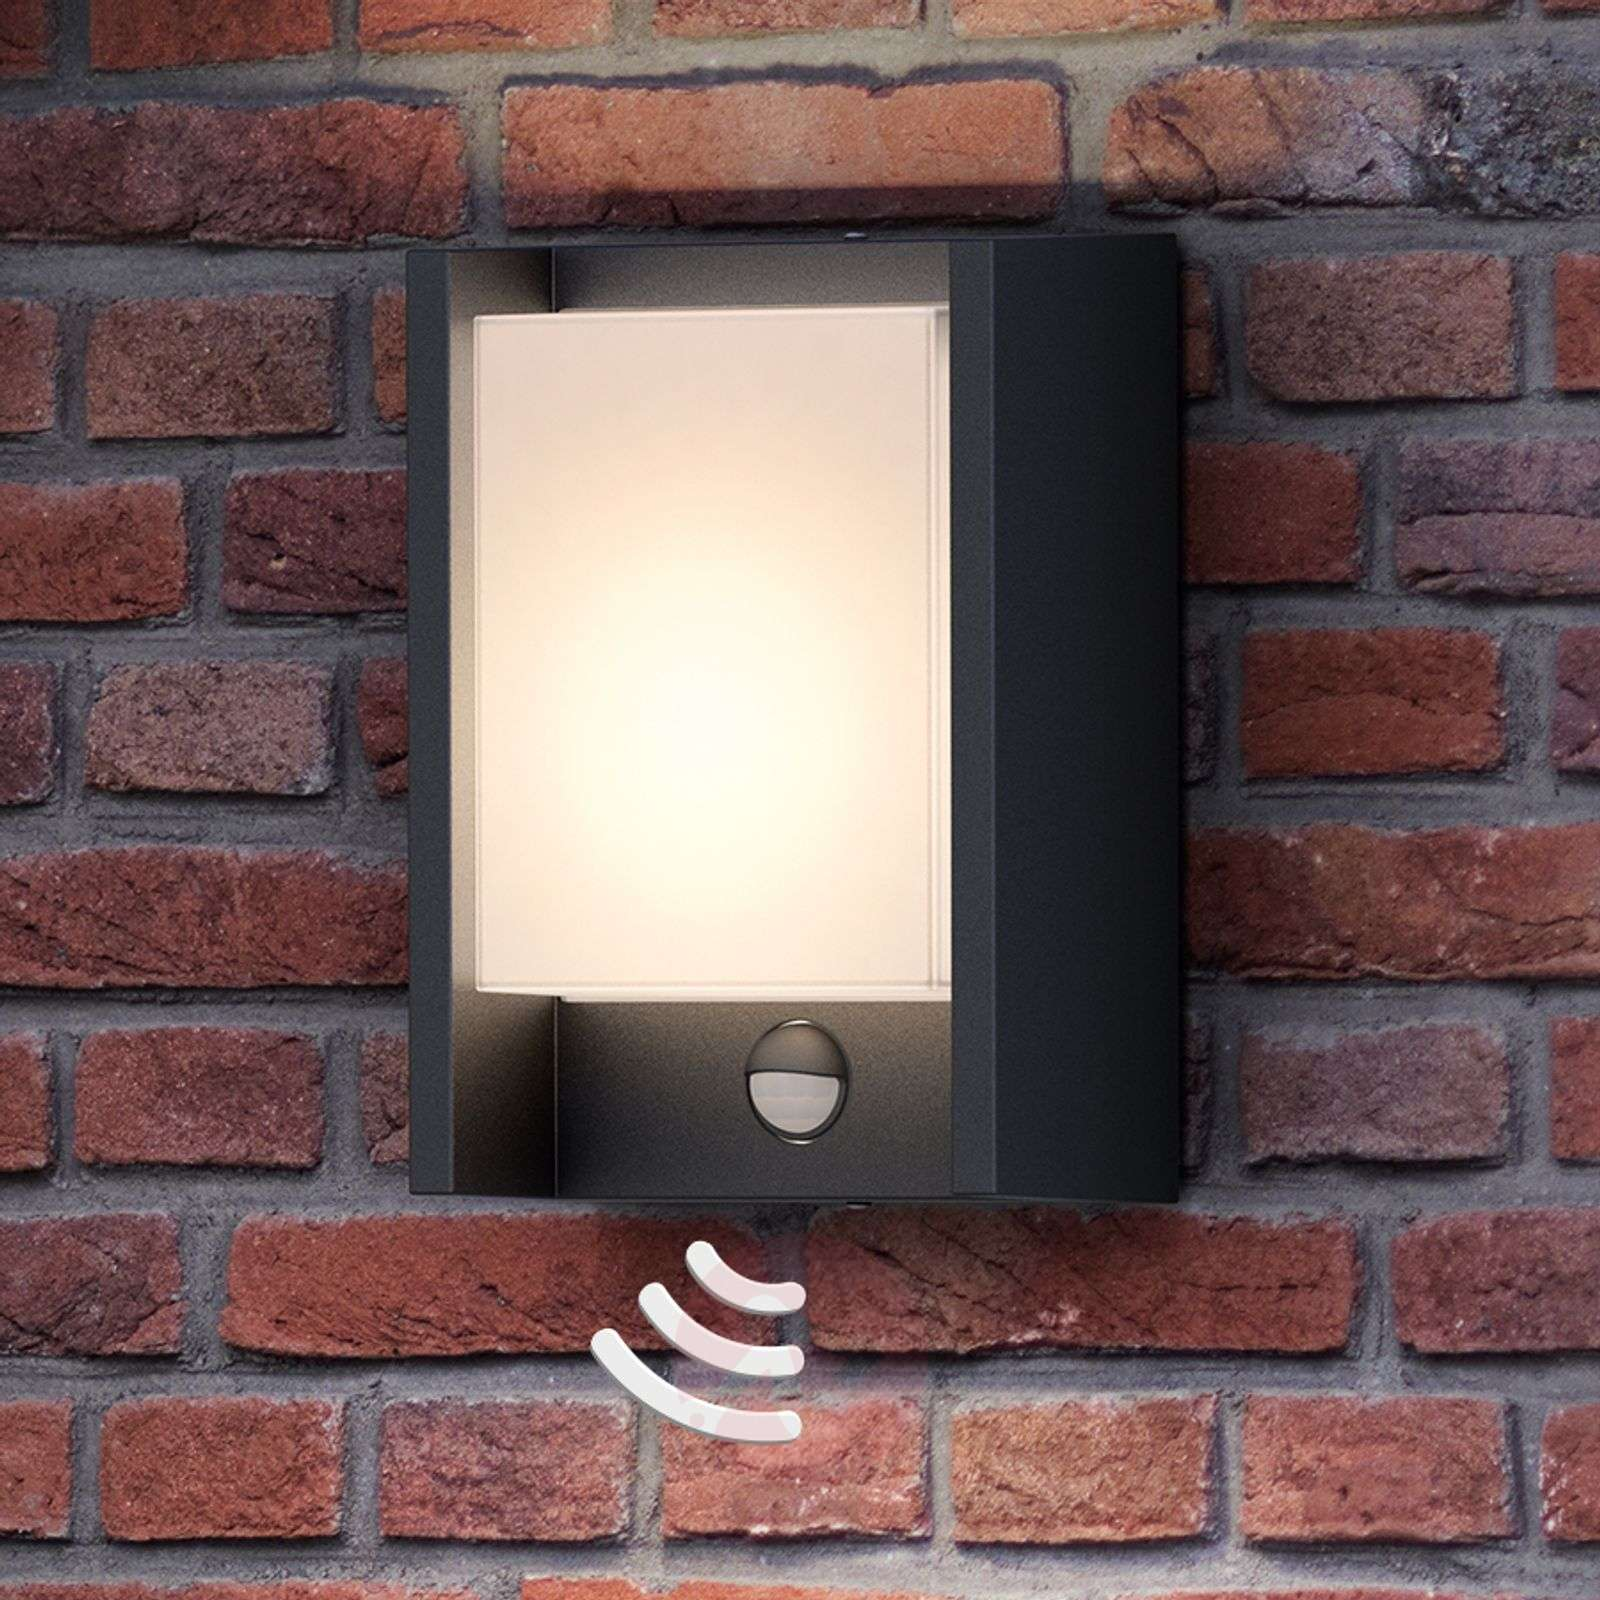 With Sensor - LED Outdoor Wall Light Arbour